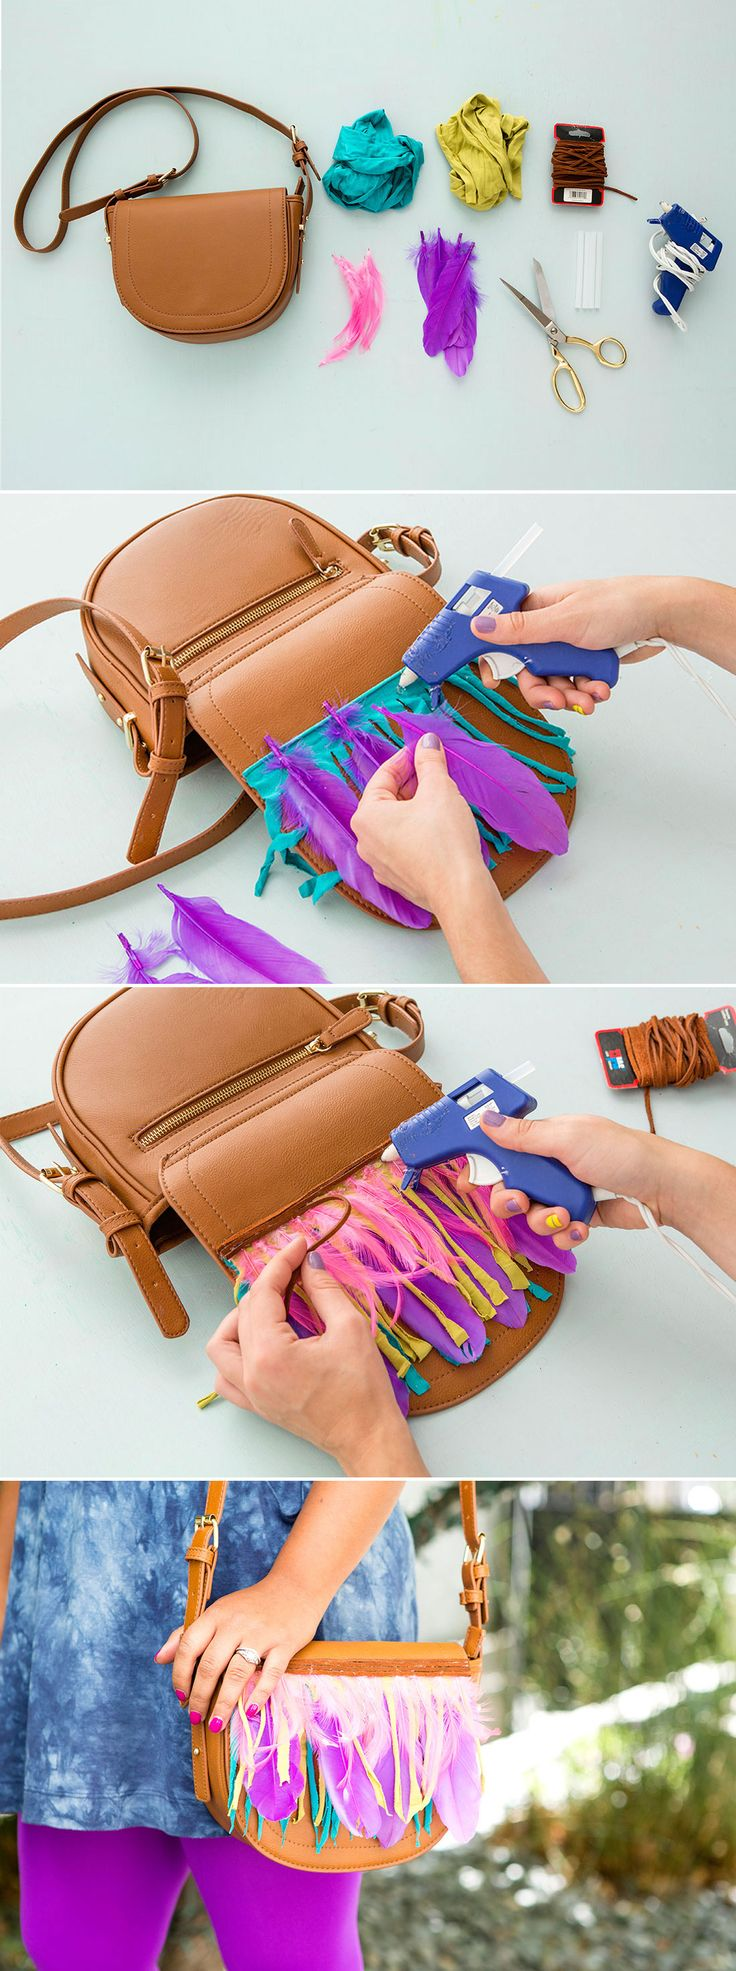 There are only three steps to making the perfect boho fringe and feather bag for summer. 1. Cut a piece of jersey fabric to match the width of your purse flap. Fringe that jersey! 2. Use hot glue to attach your materials in an alternating pattern – fringe, feathers, fringe, feathers. 3. Hot glue the suede cord to cover up the tips of your feathers.